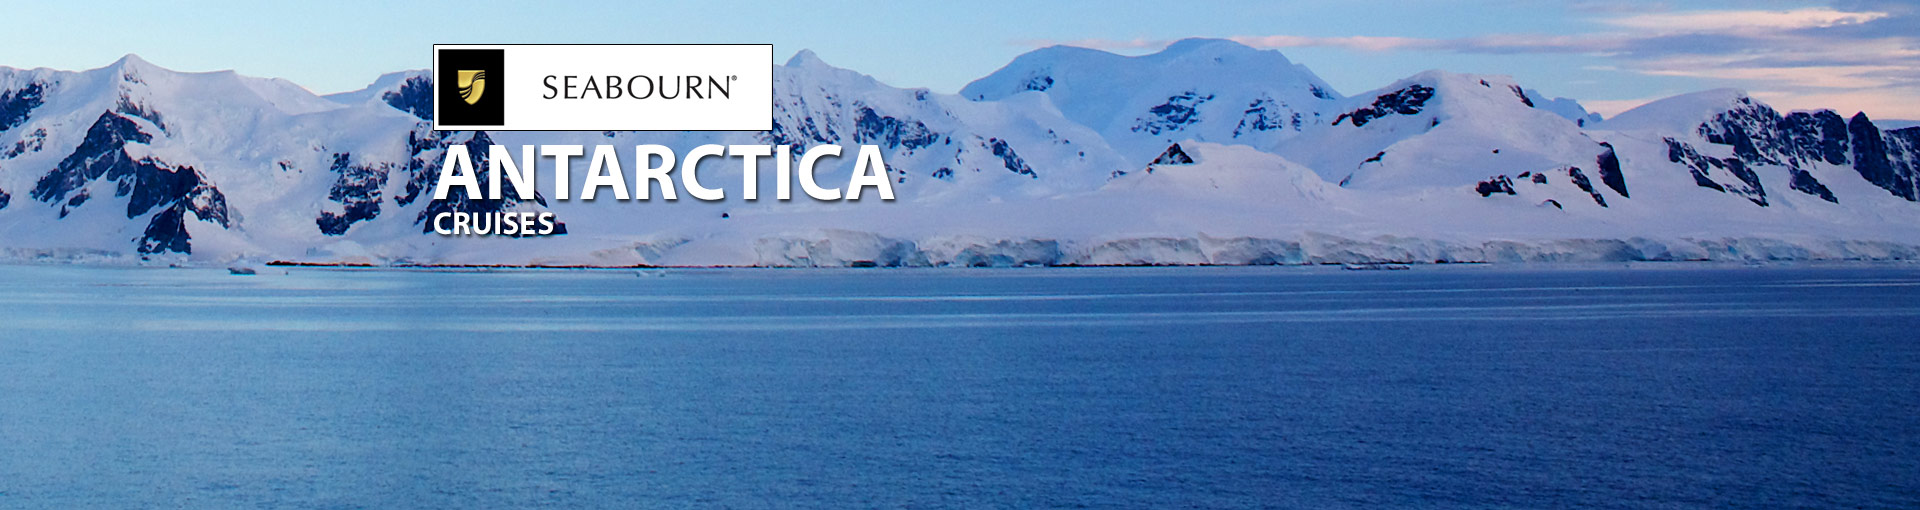 Banner for Seabourn Antarctica